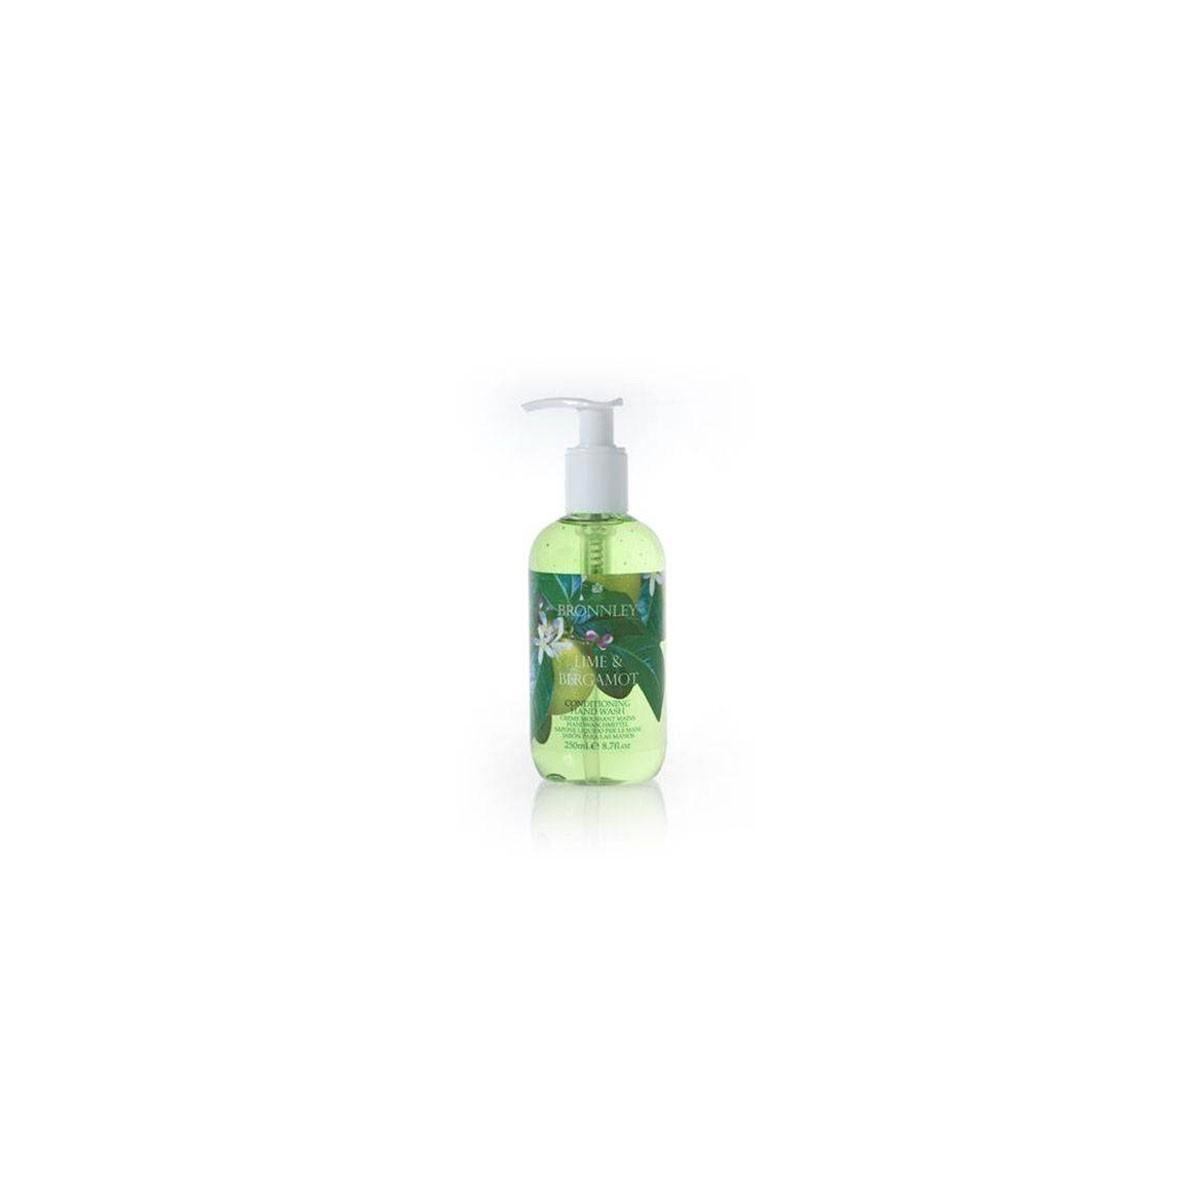 Dyal Bronnley Lime Bergamot Hand Cream 250 ml